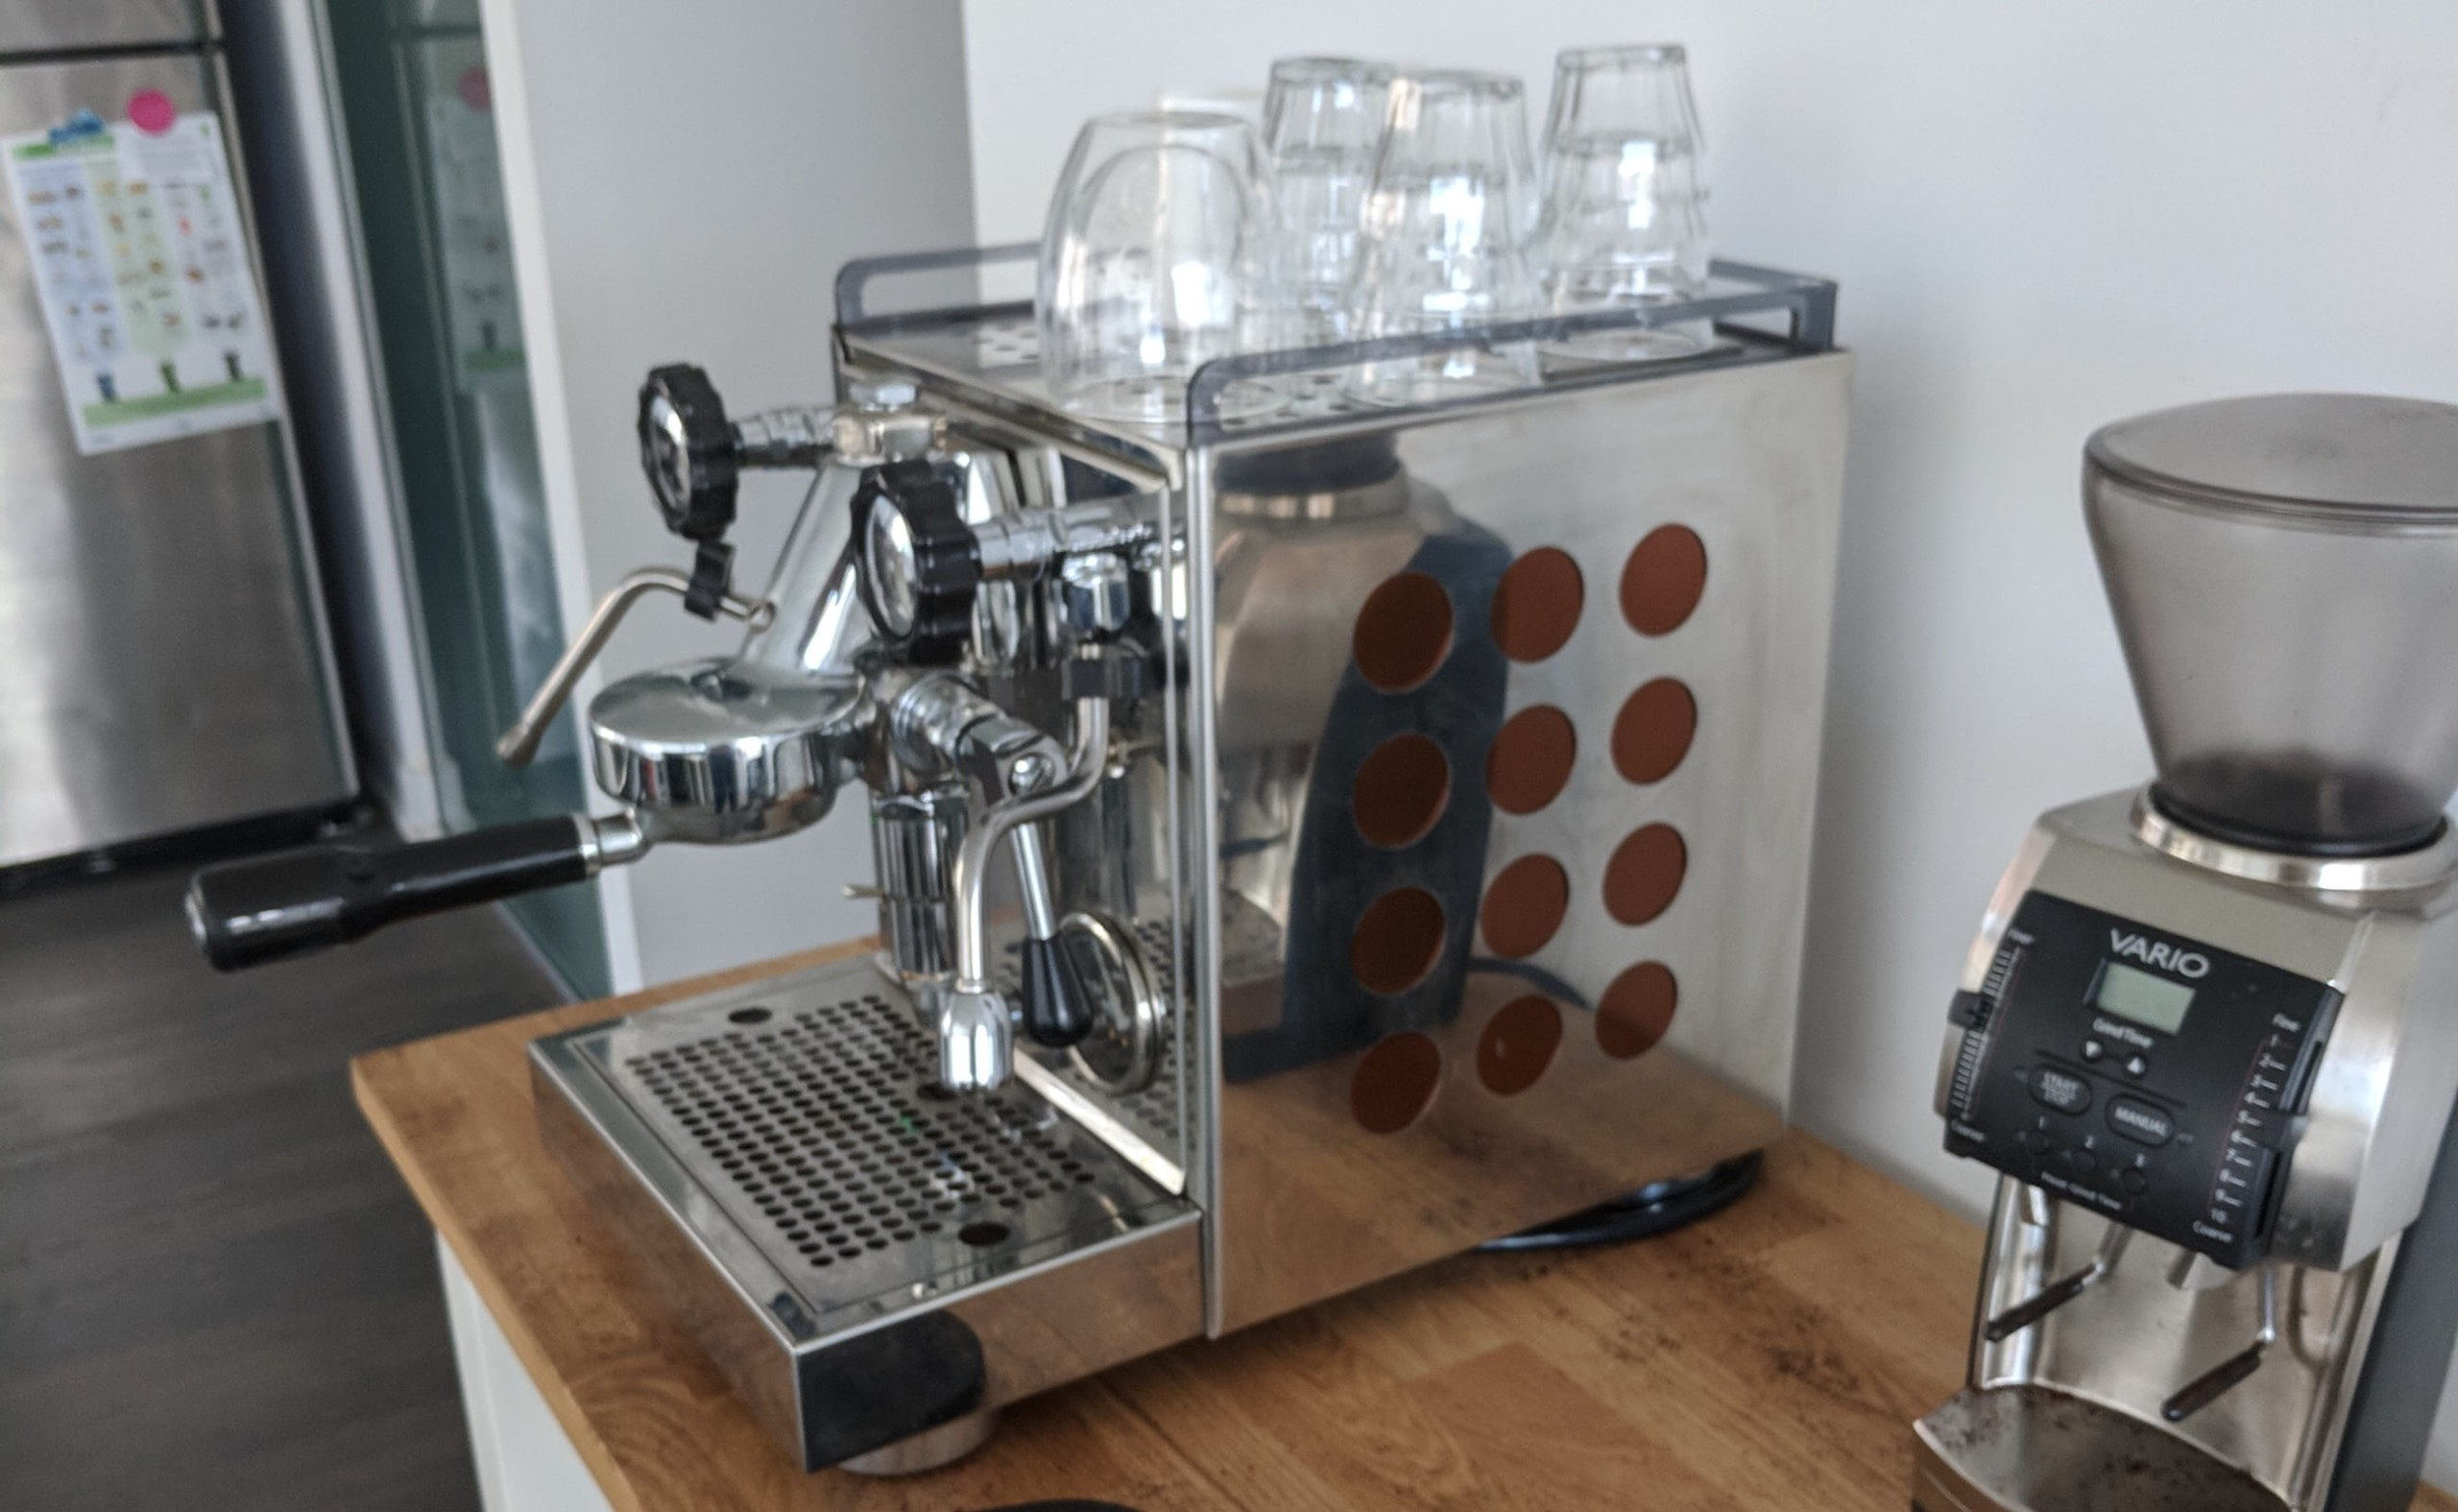 Rocket Espresso Appartamento Compact Espresso Machine brings the coffee shop to you